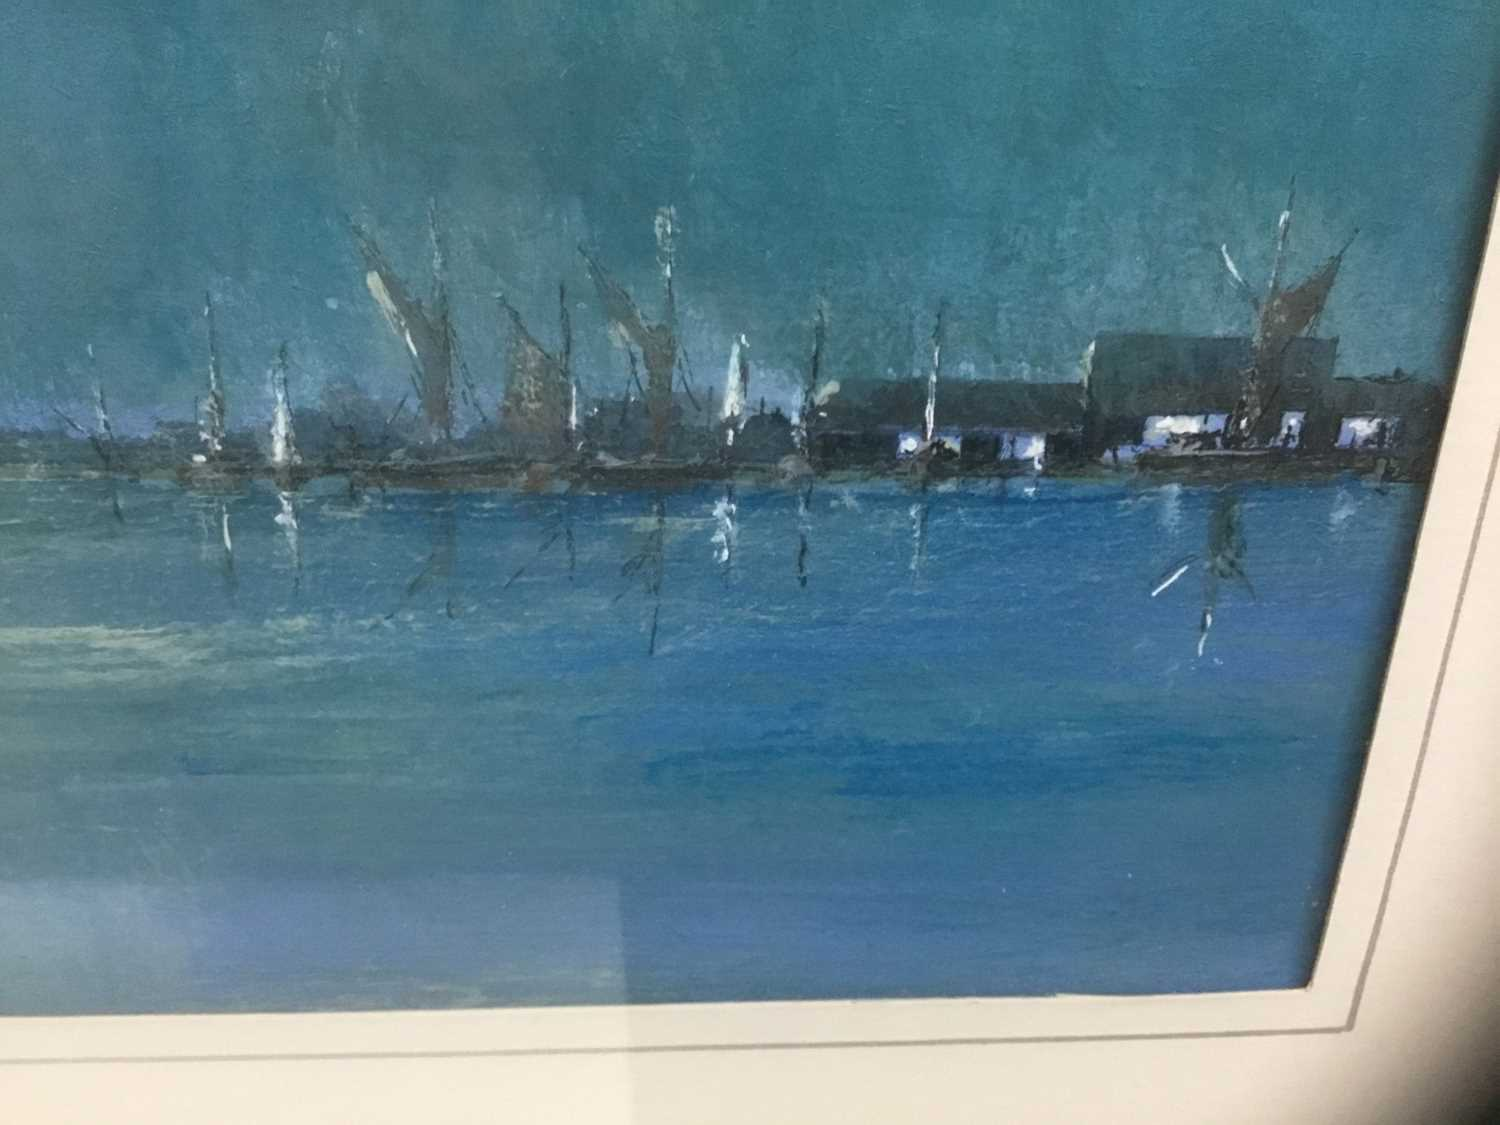 John Clarke, contemporary, oil on board - sailing barges, signed, 25cm x 36cm, in glazed frame - Image 4 of 7